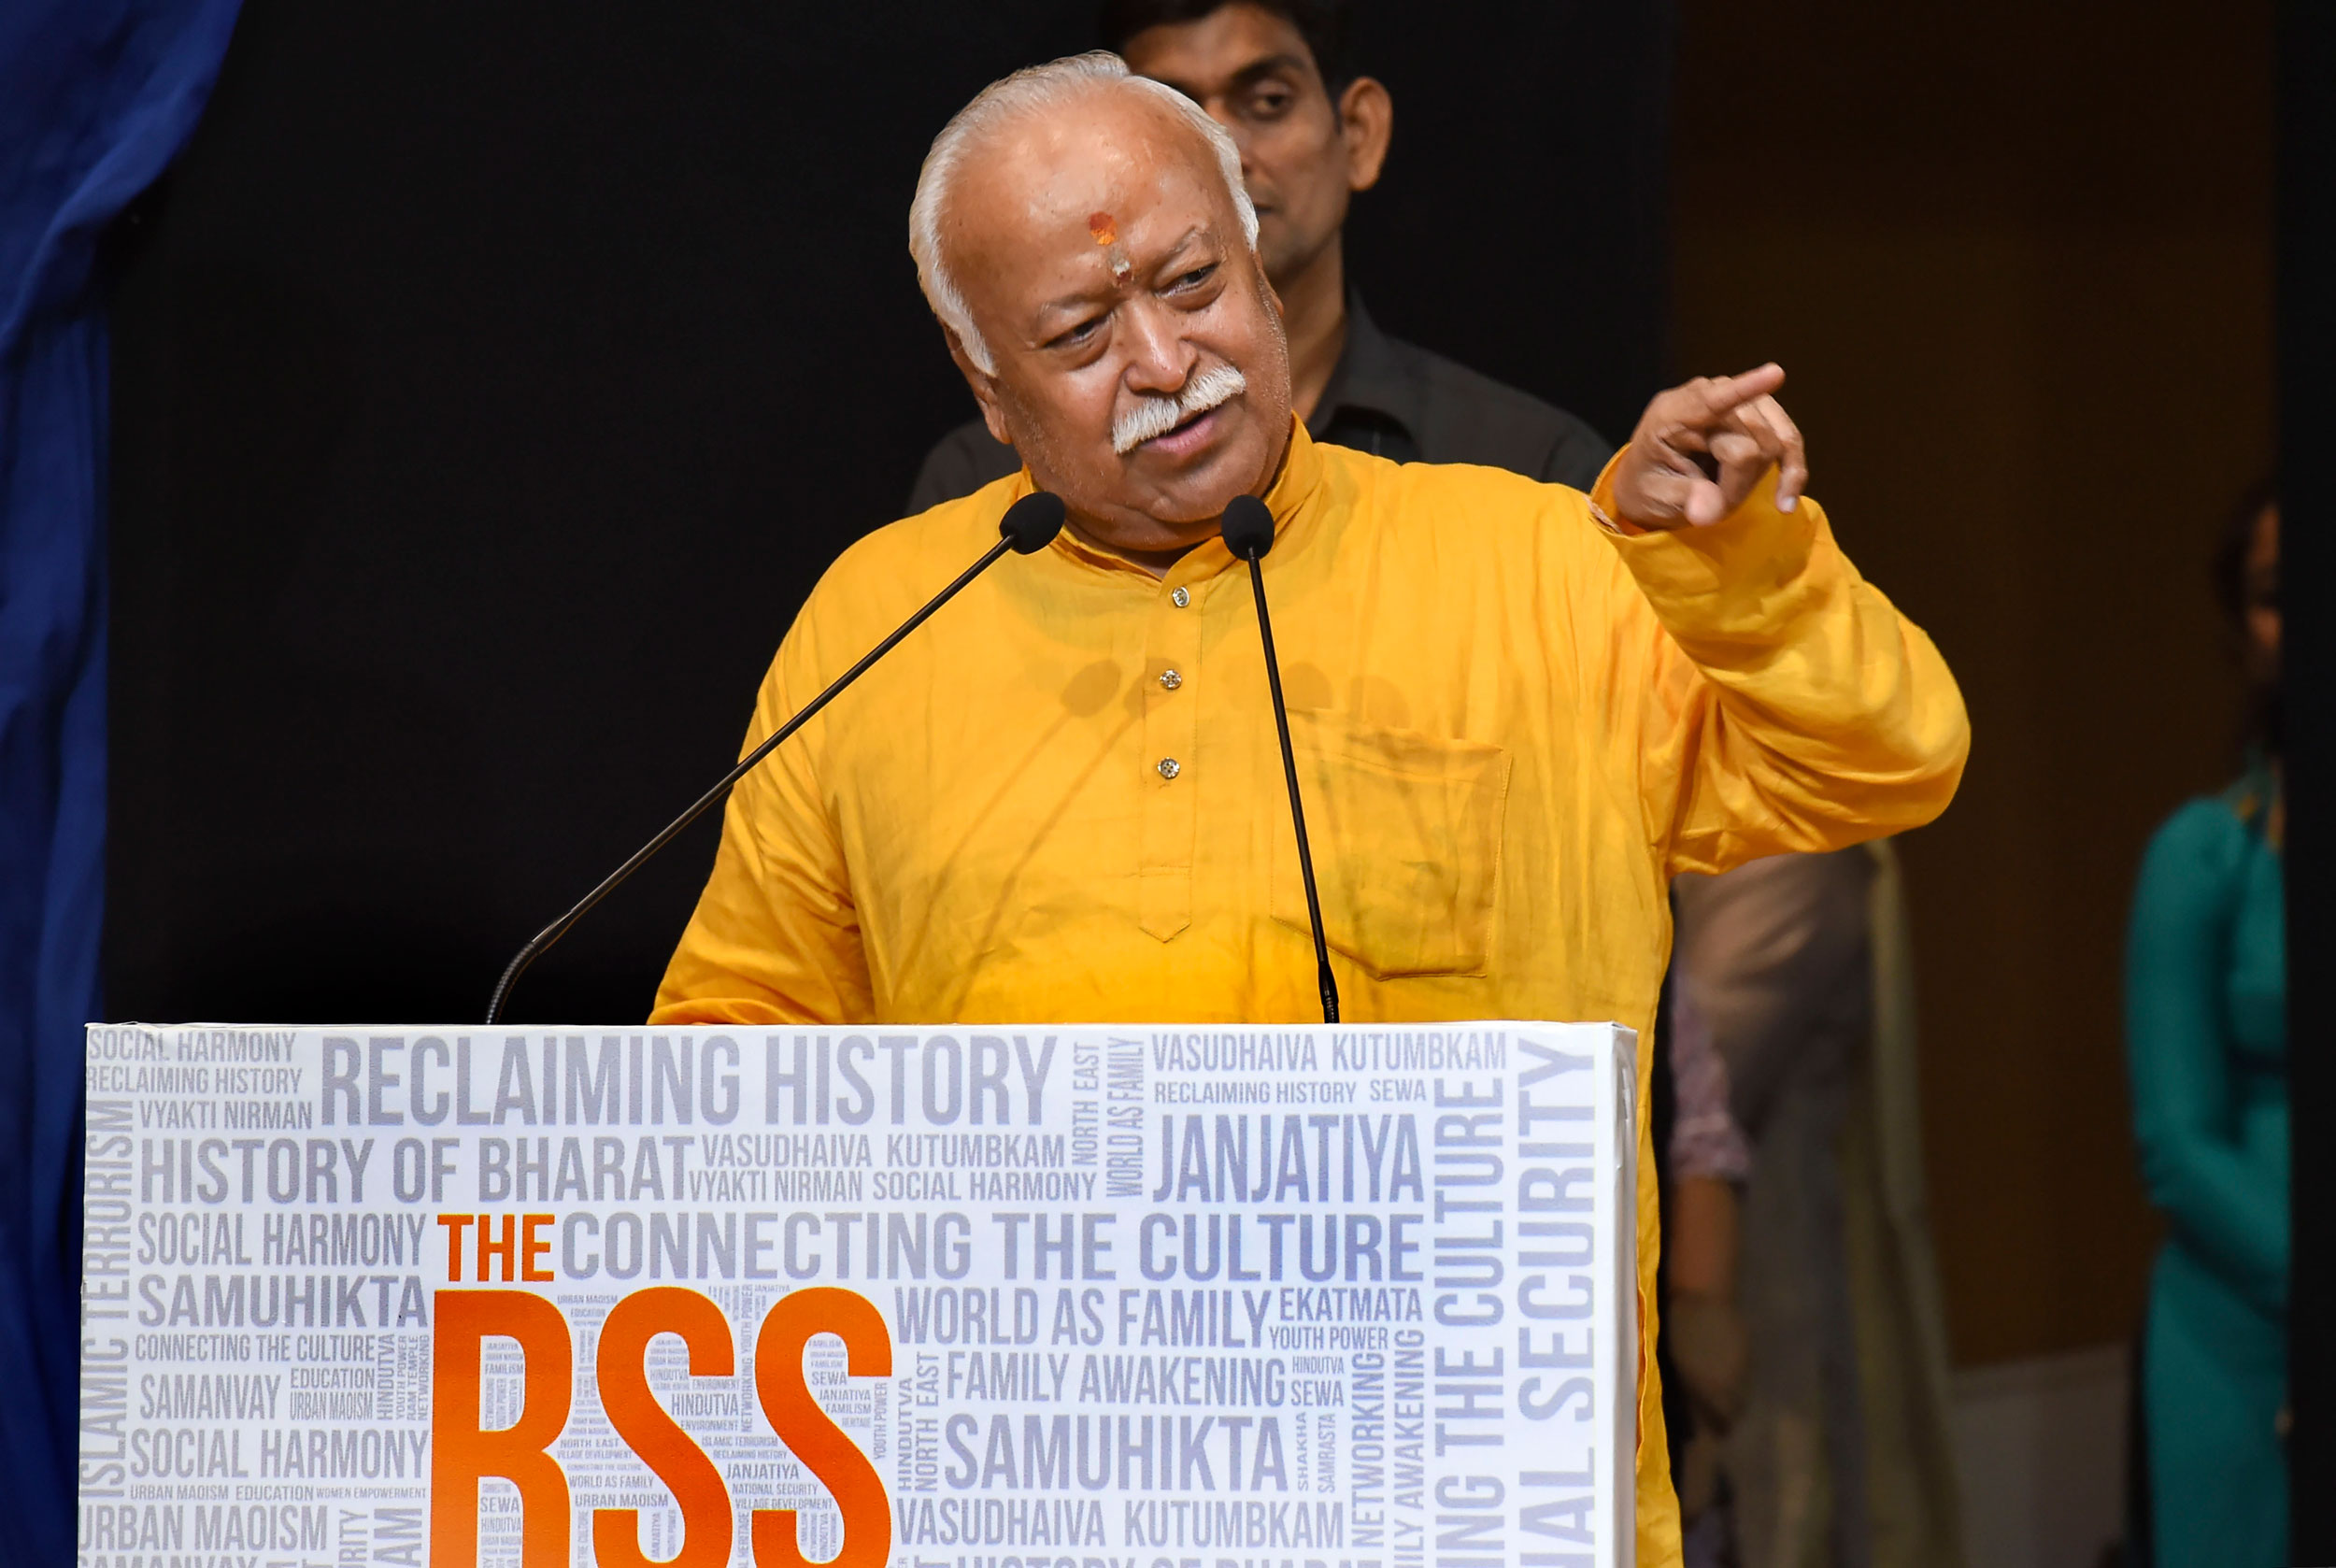 The sincerity or emptiness of Mohan Bhagwat's message of maintaining harmony and upholding the rule of law will be demonstrated by how vigorously the Narendra Modi-led government takes action against perpetrators of mob violence.